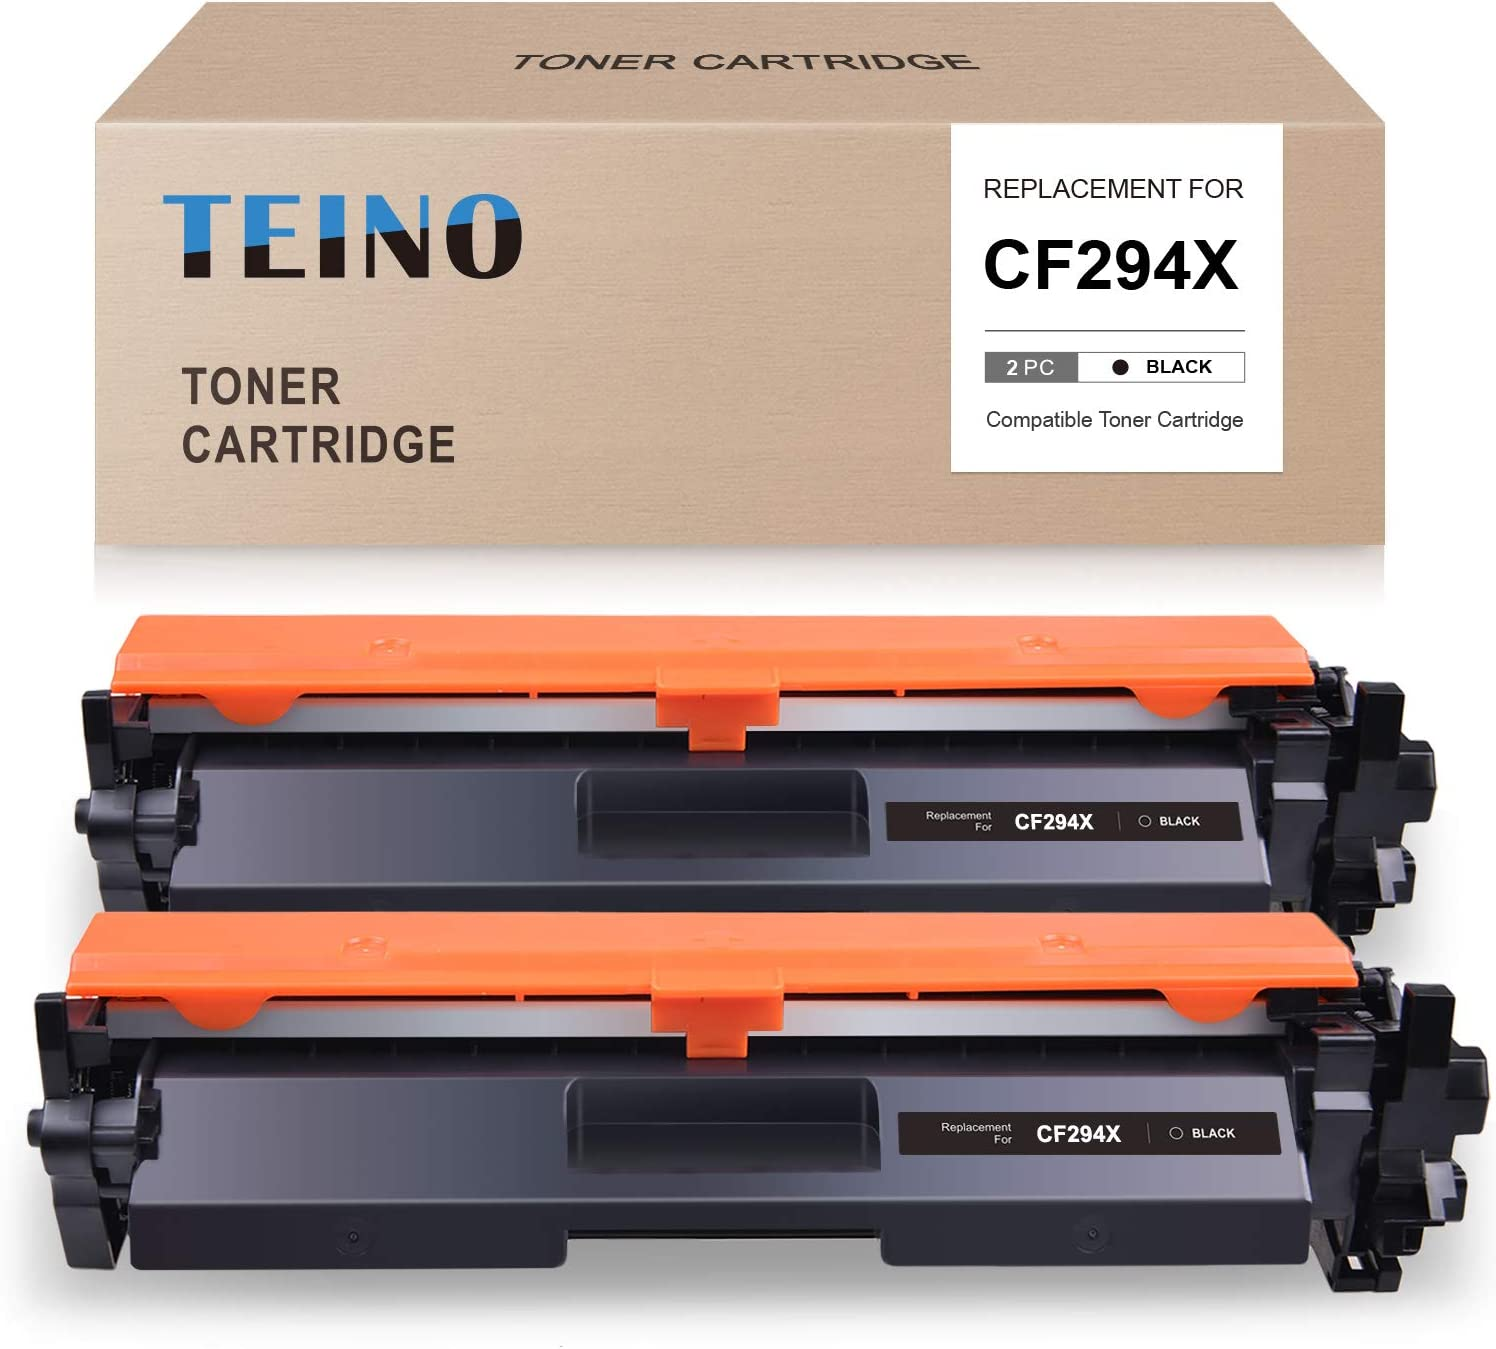 TEINO Compatible Toner Cartridge Replacement for HP 94X CF294X 94A CF294A use with HP Laserjet Pro M118dw M118 Laserjet Pro MFP M148dw M148fdw M149fdw (Black, 2-Pack)